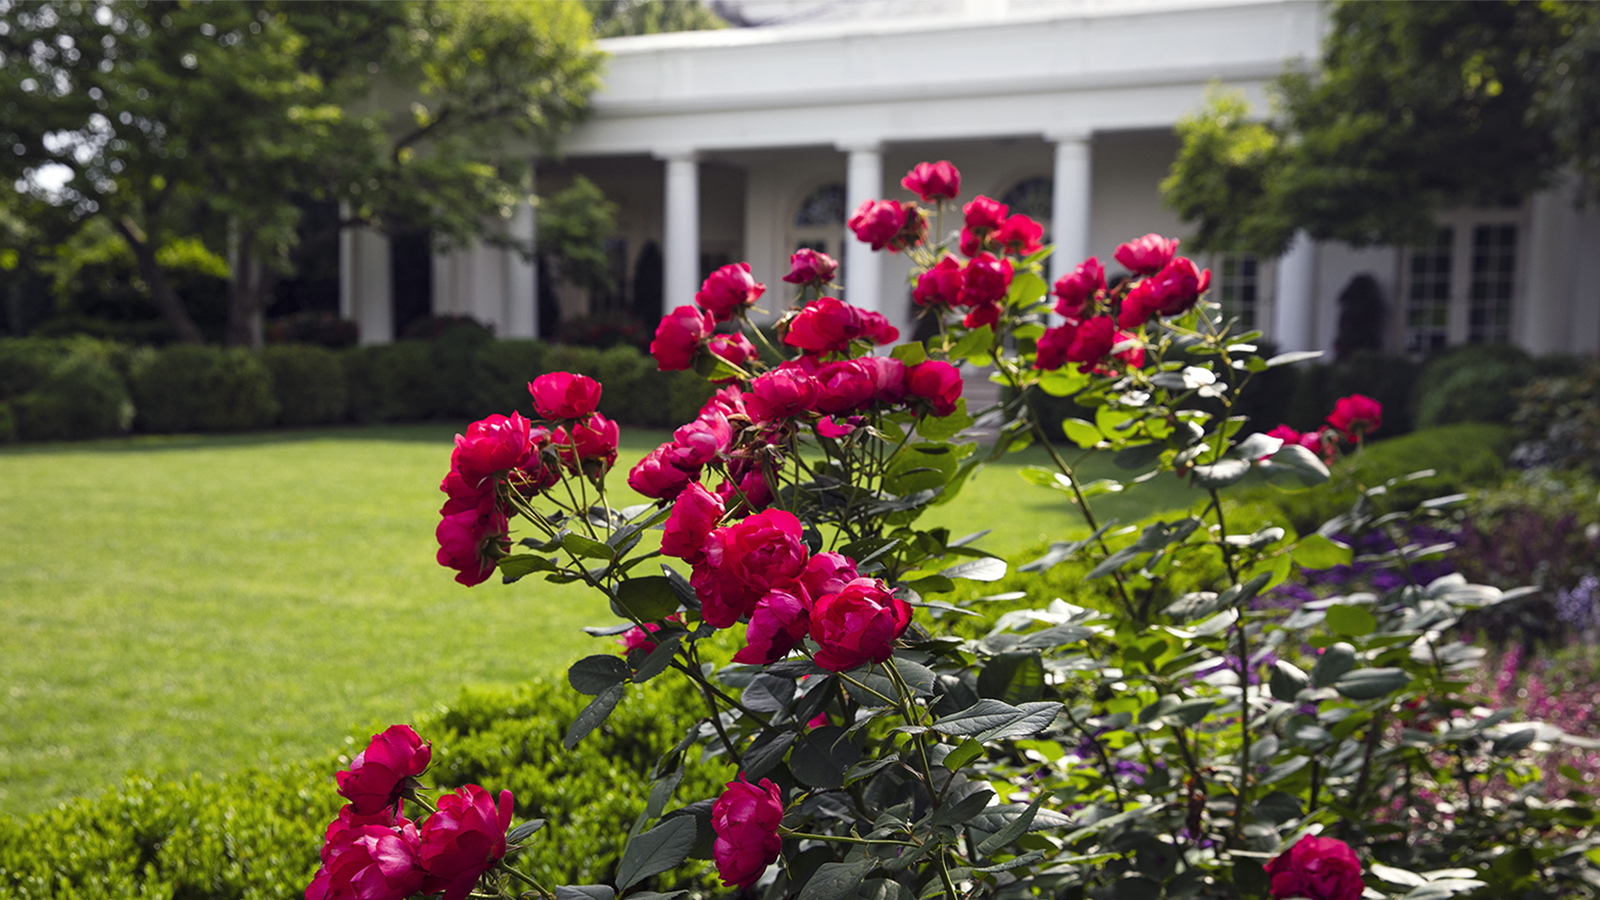 How The White House Rose Garden Became The Most Famous Garden In The World Howstuffworks